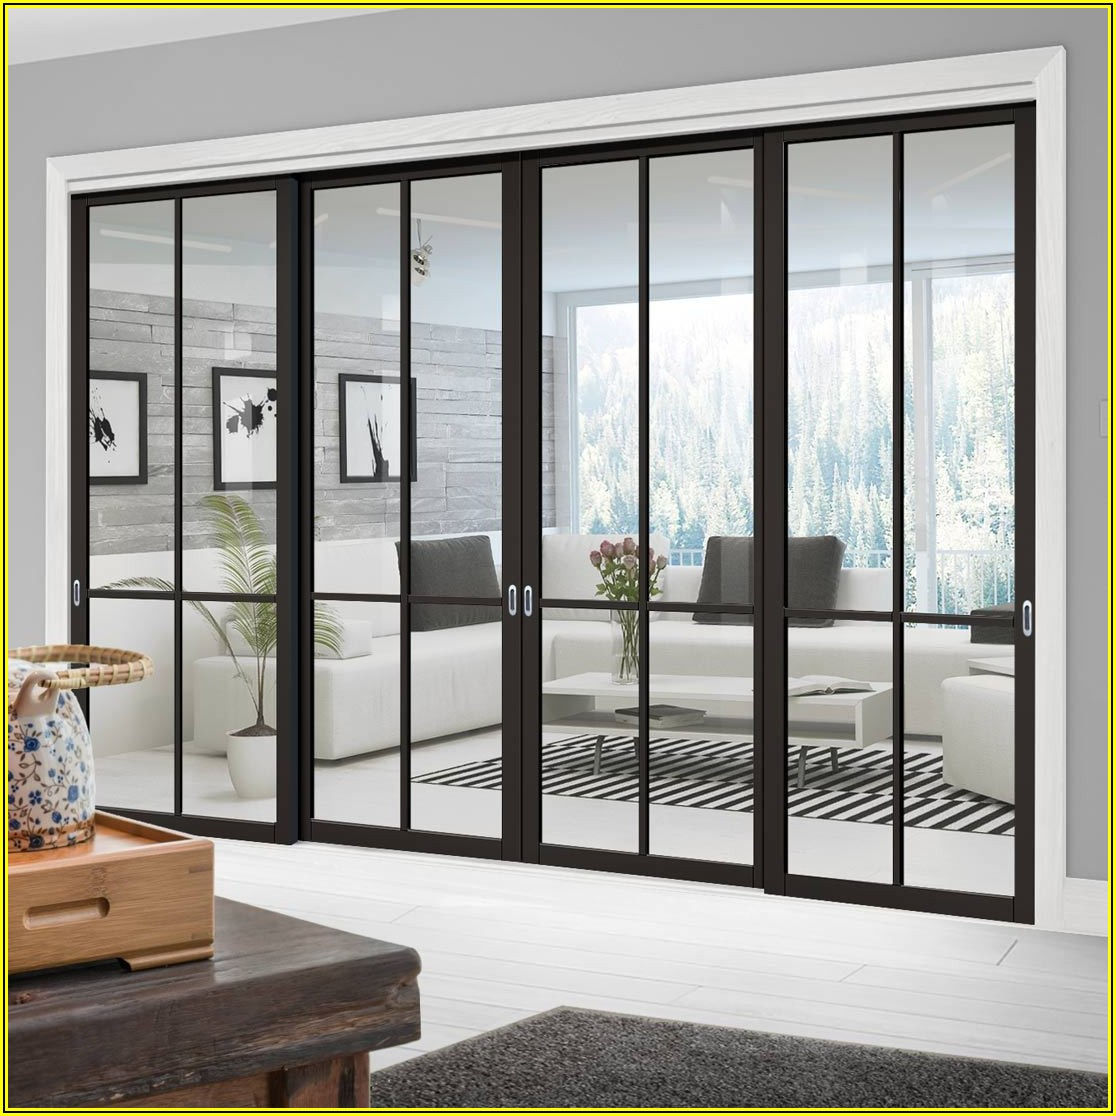 4 Pane Sliding Patio Doors